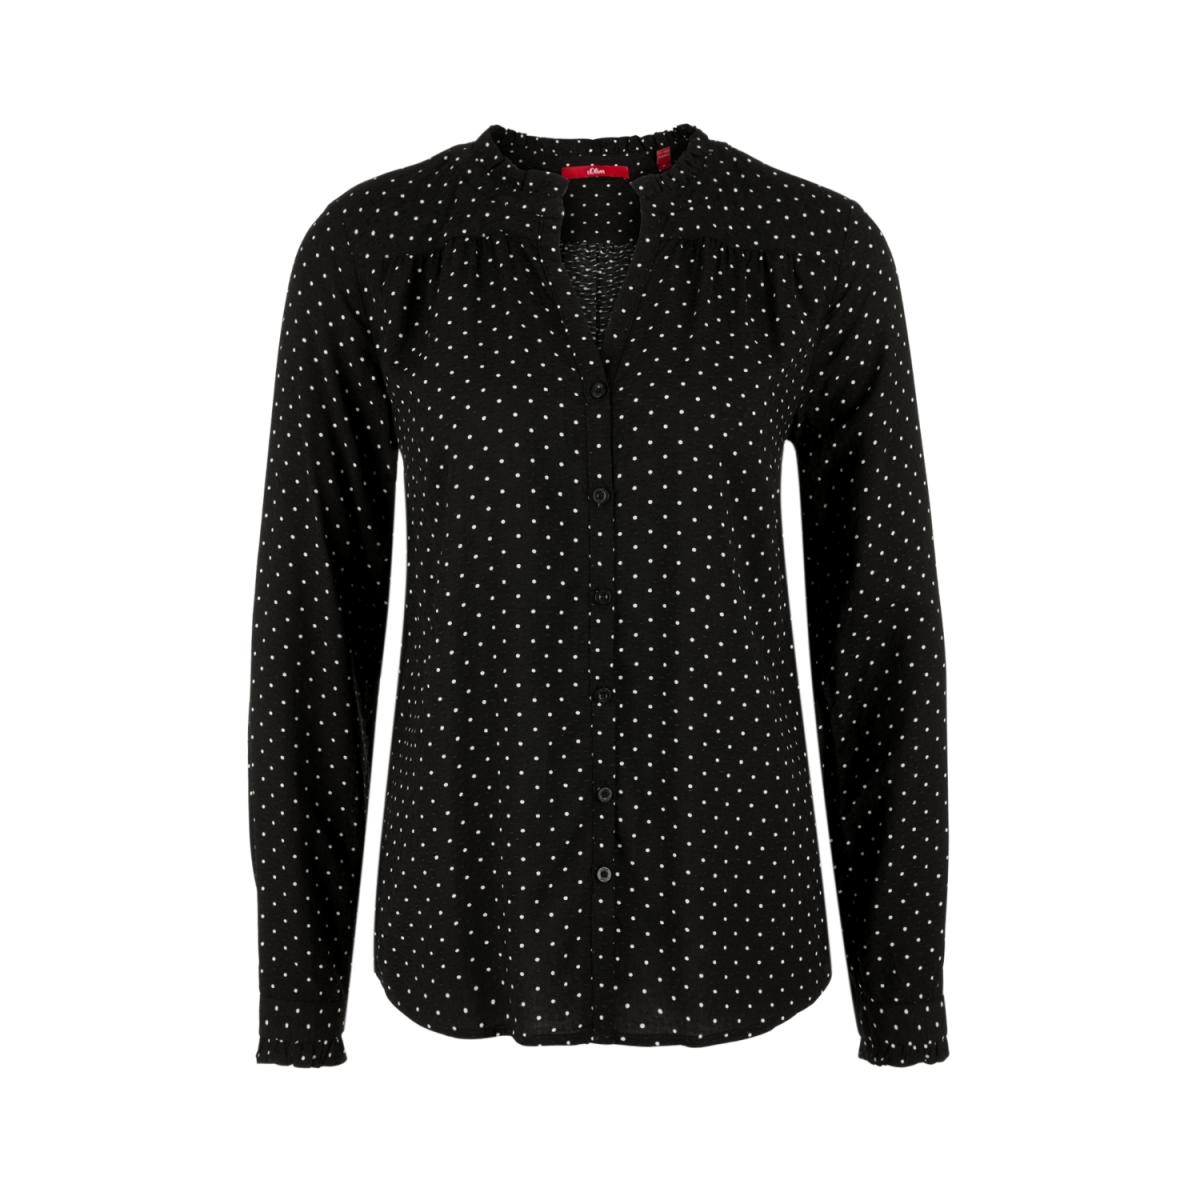 14810111301 s.oliver blouse 99a0